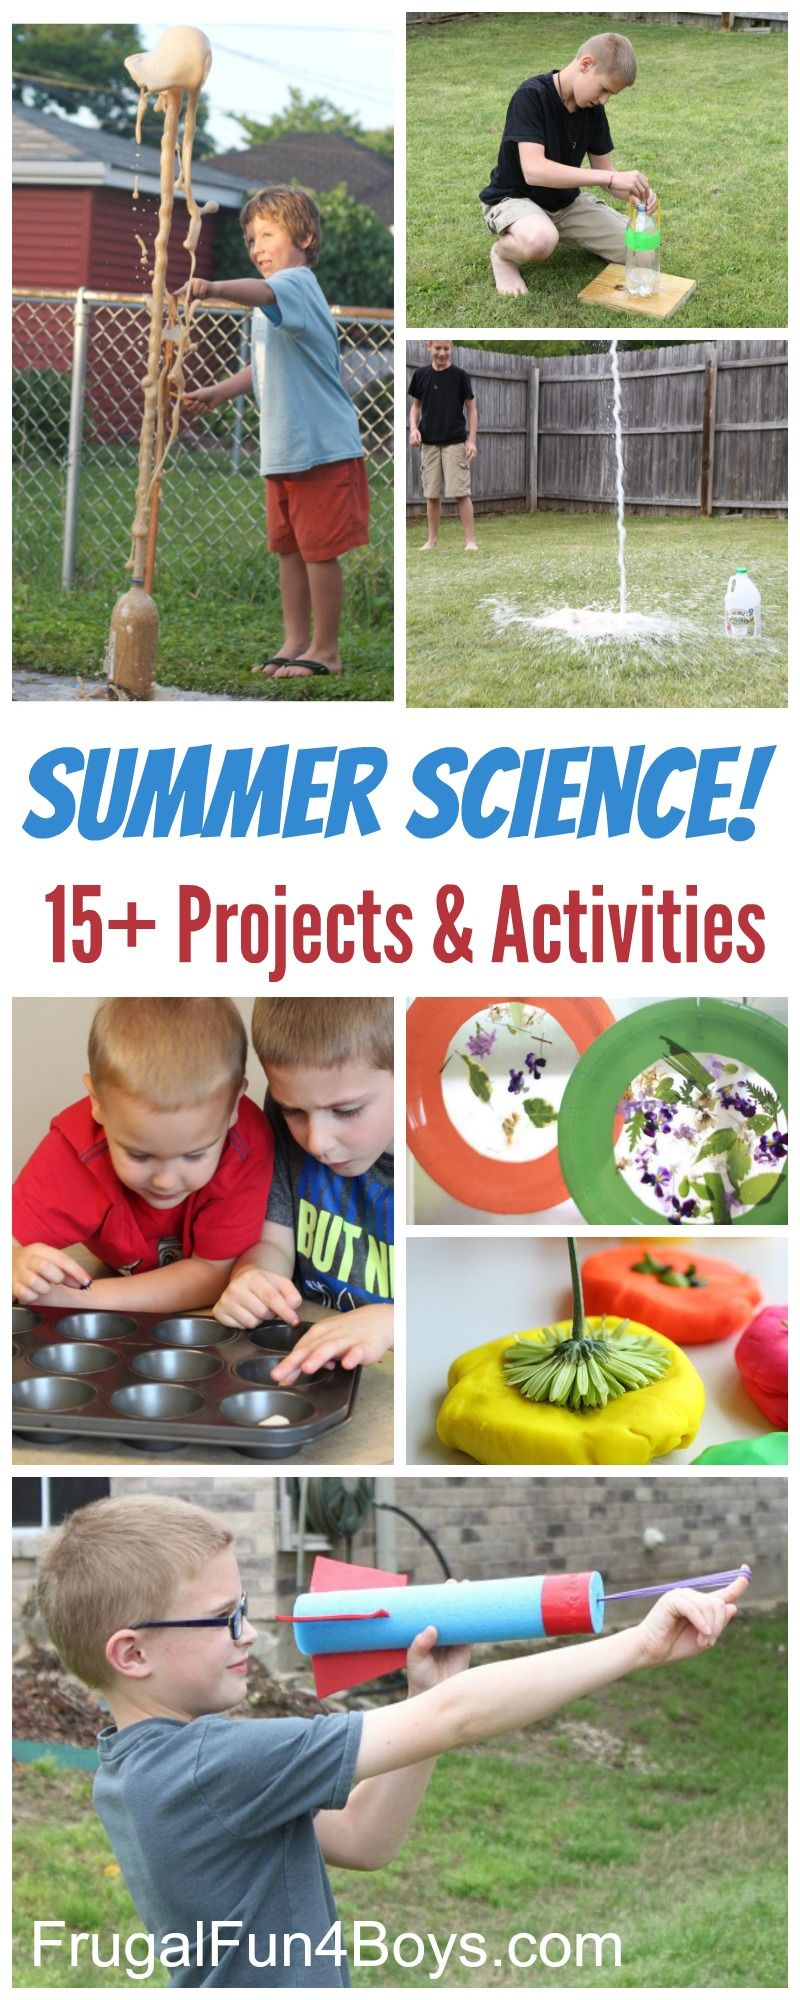 Summer Science Experiments and Activities for Kids! - Frugal Fun For Boys